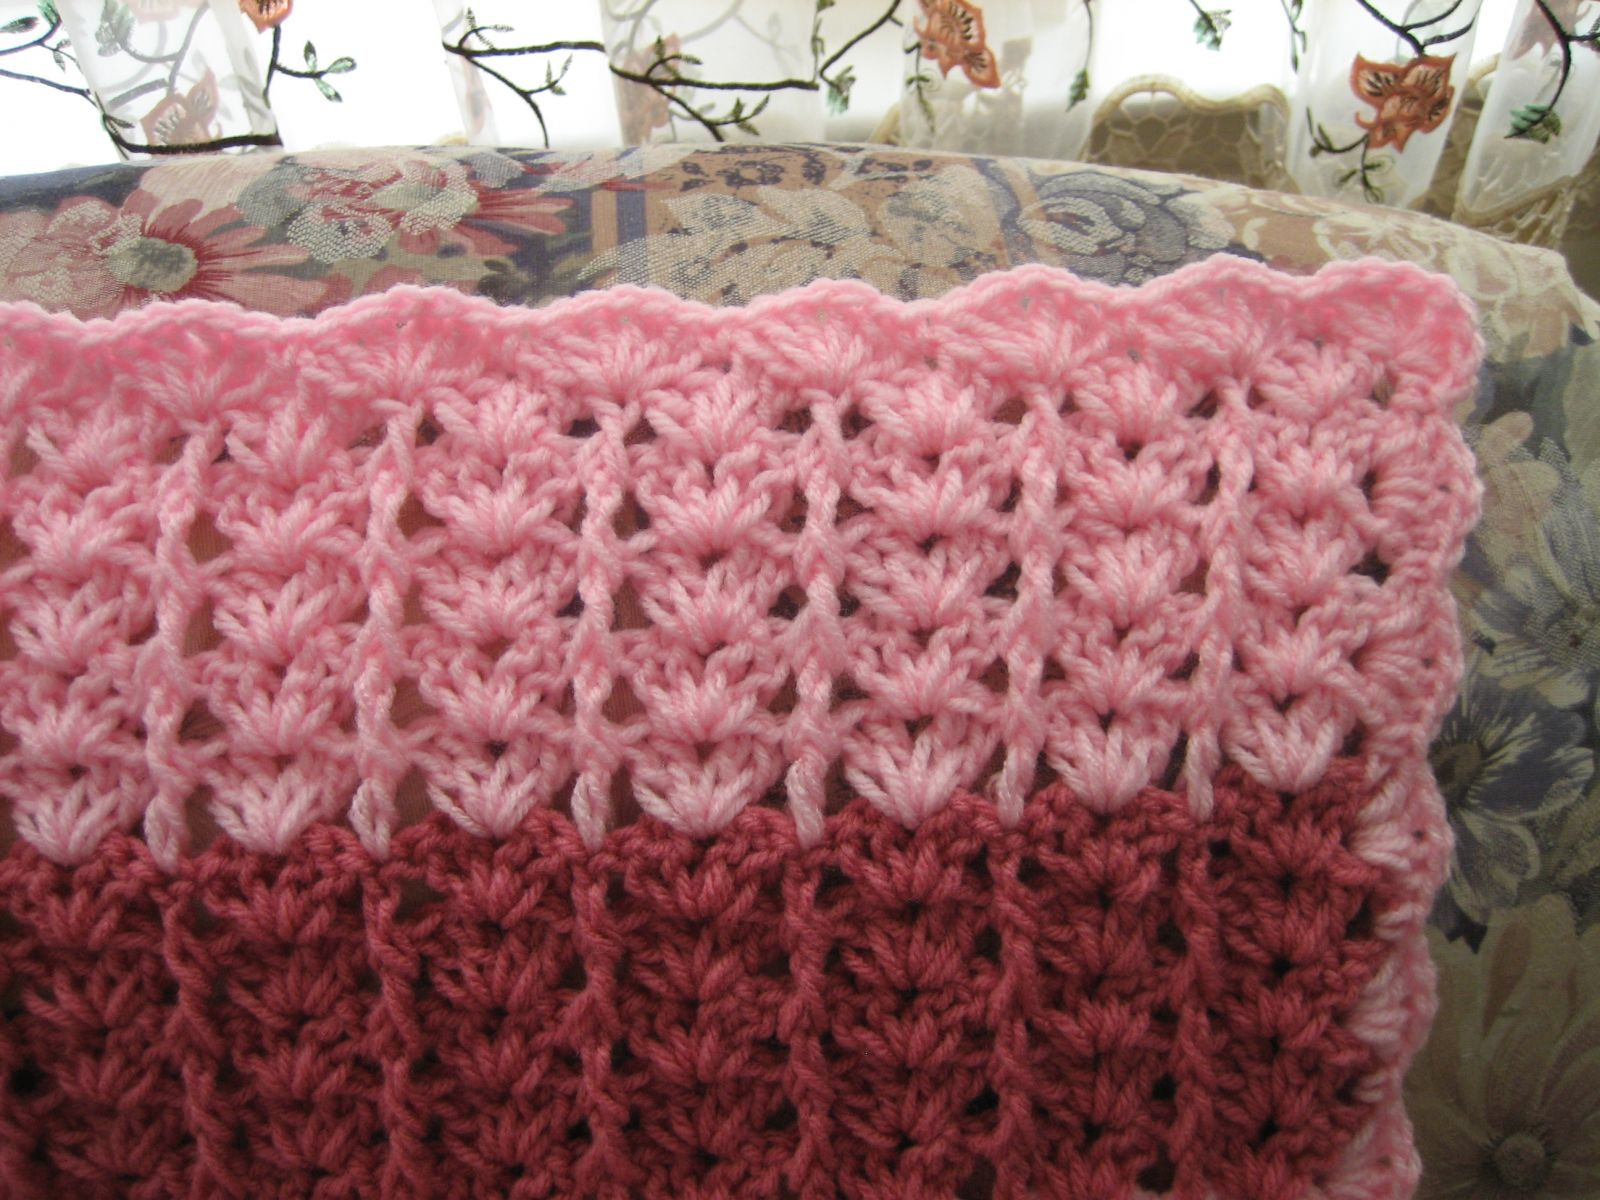 Crochet Shell Blanket Pattern Inspirational Lacy Shades Of Pink Shells Afghan Of Great 45 Pictures Crochet Shell Blanket Pattern